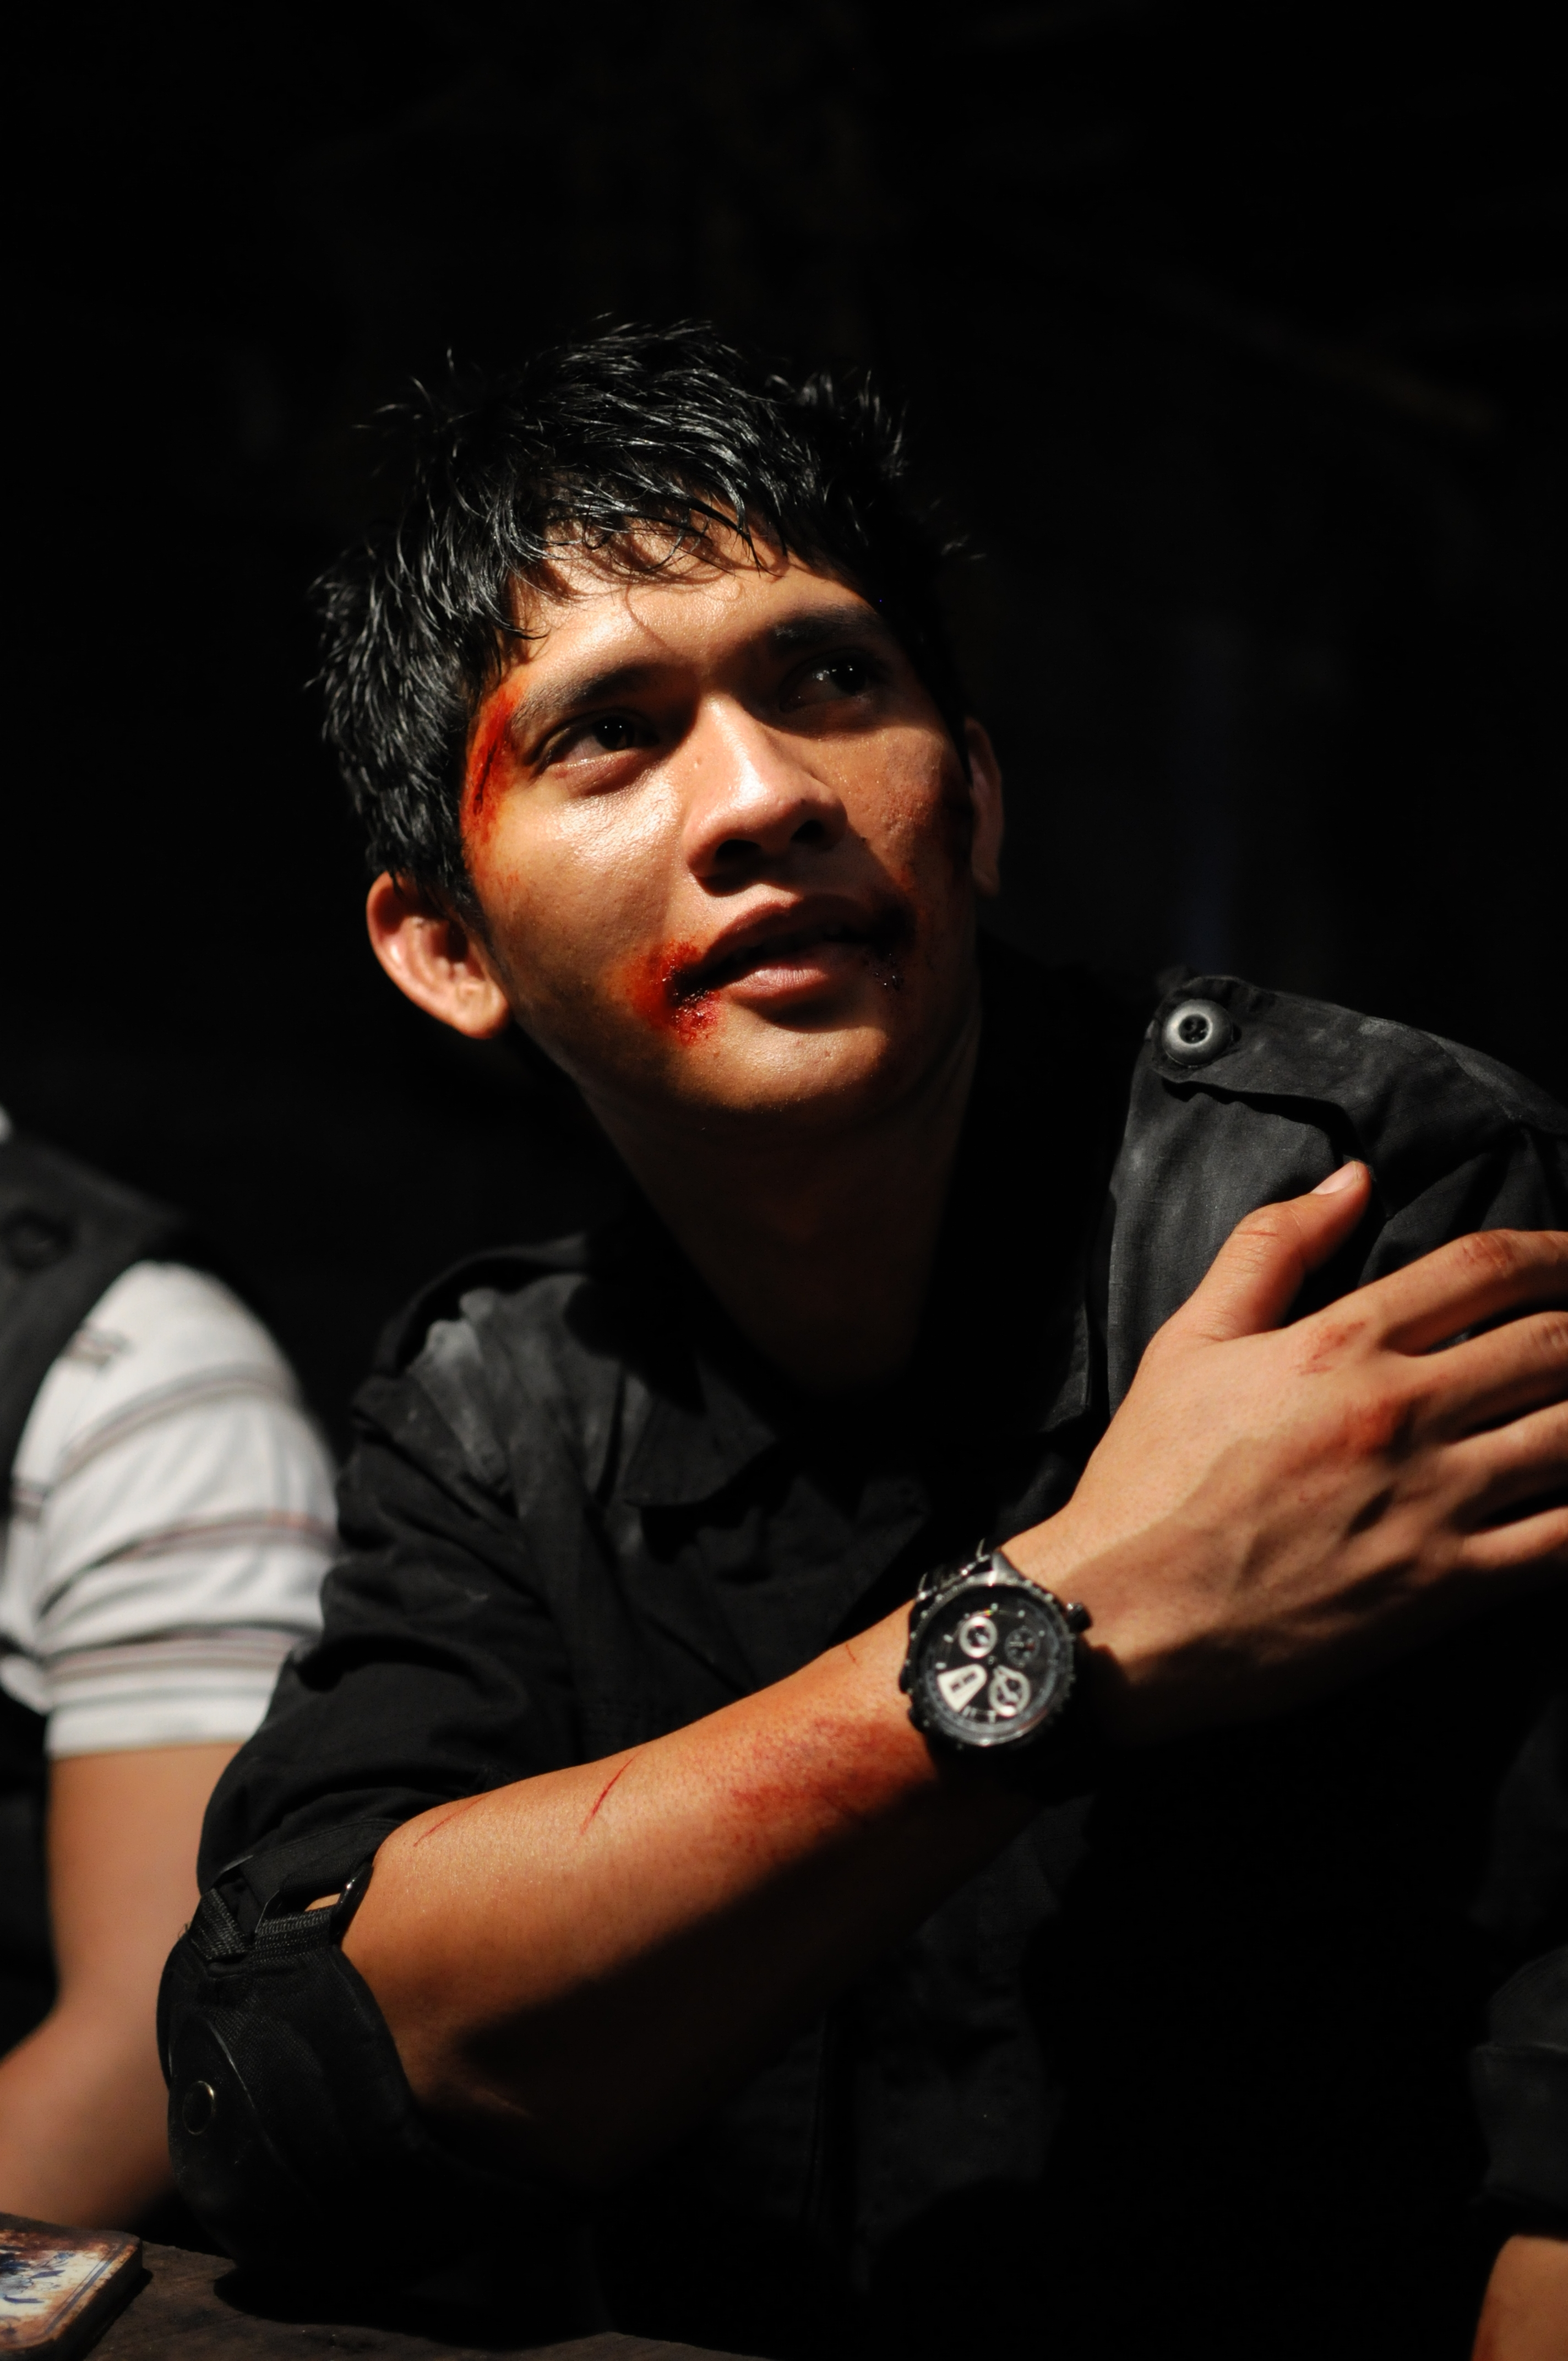 iko uwais instagramiko uwais filmleri, iko uwais фильмы, iko uwais wiki, iko uwais биография, iko uwais vk, iko uwais film, iko uwais tony jaa, iko uwais interview, iko uwais boyu, iko uwais body, ико ювайс фильмы, iko uwais facebook, iko uwais wikipedia, iko uwais izle, iko uwais new movie, iko uwais wife, iko uwais man of taichi, iko uwais imdb, iko uwais net worth, iko uwais instagram